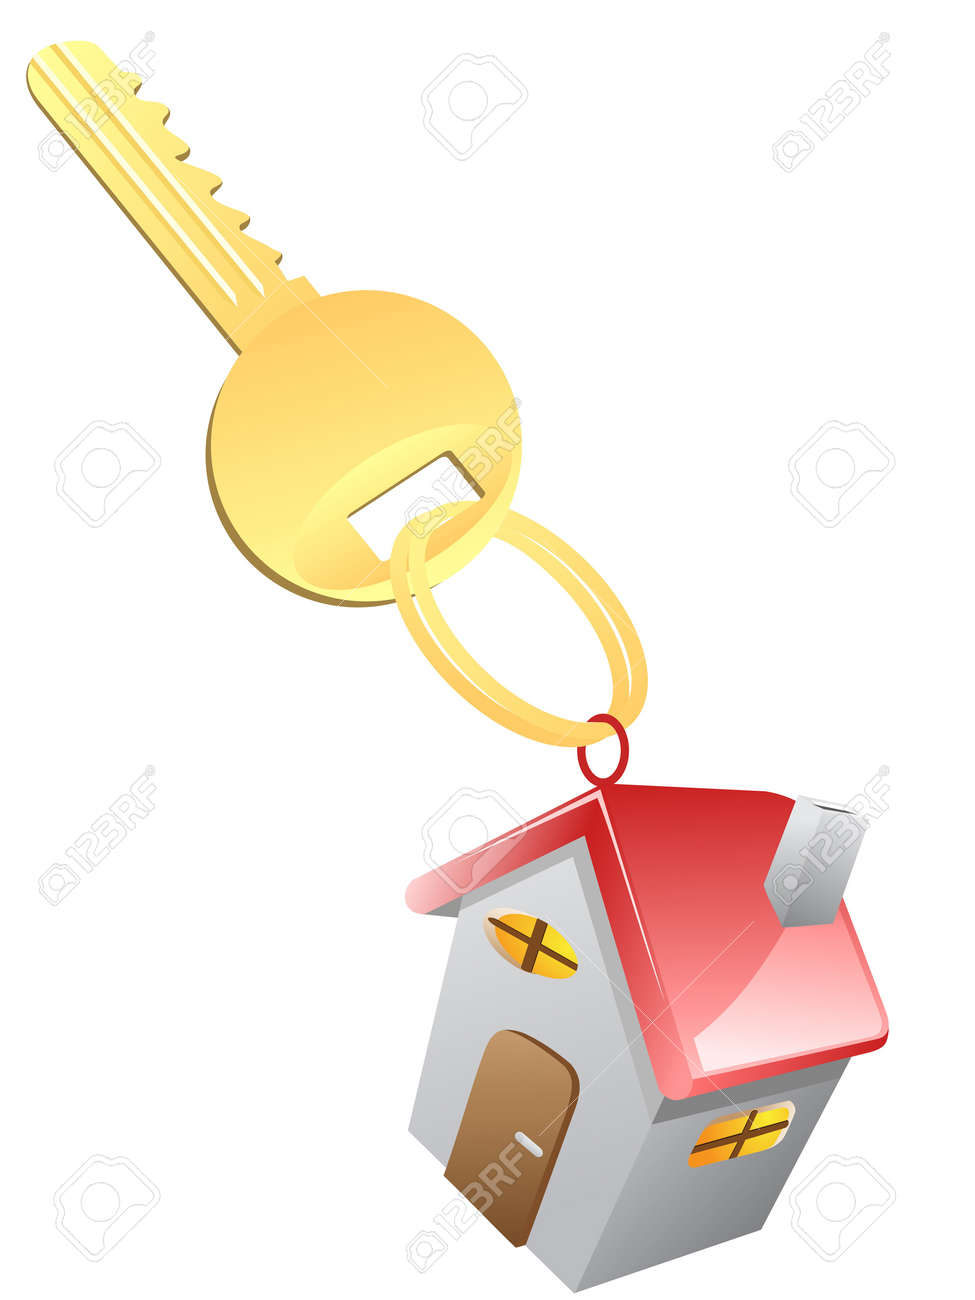 isolated House Key on white background Stock Vector - 15926440